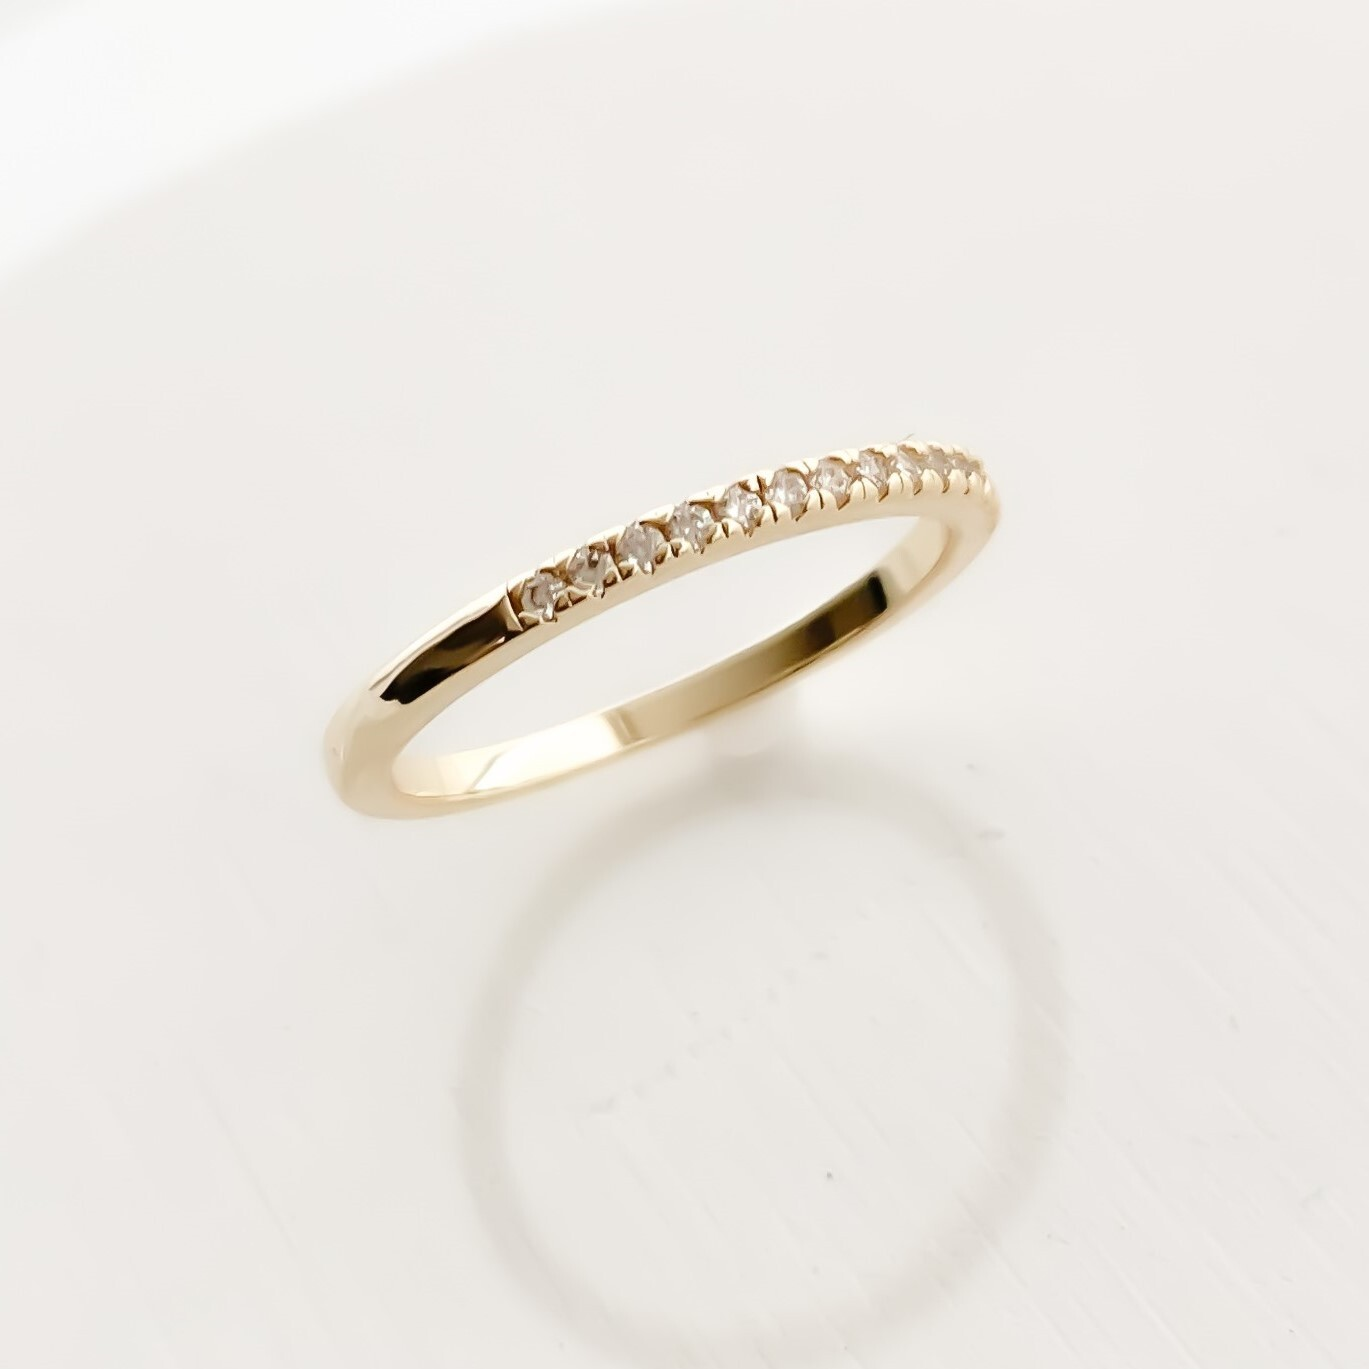 harf eternity ring #11 #13 0525n